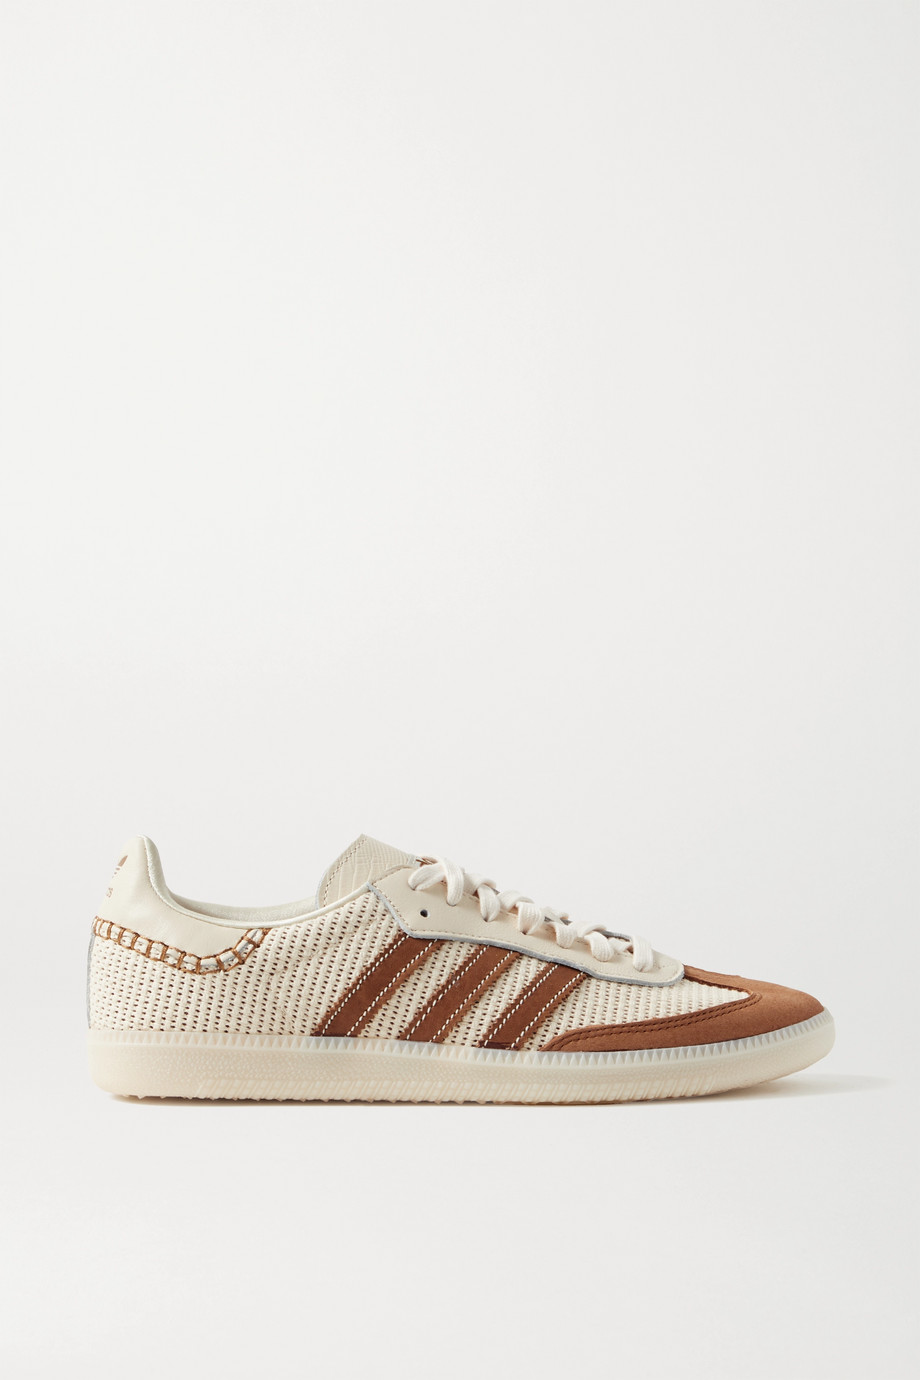 Wales Bonner Samba suede, leather and mesh sneakers by Adidas Oeiginals, available on net-a-porter.com for $180 Bella Hadid Shoes Exact Product